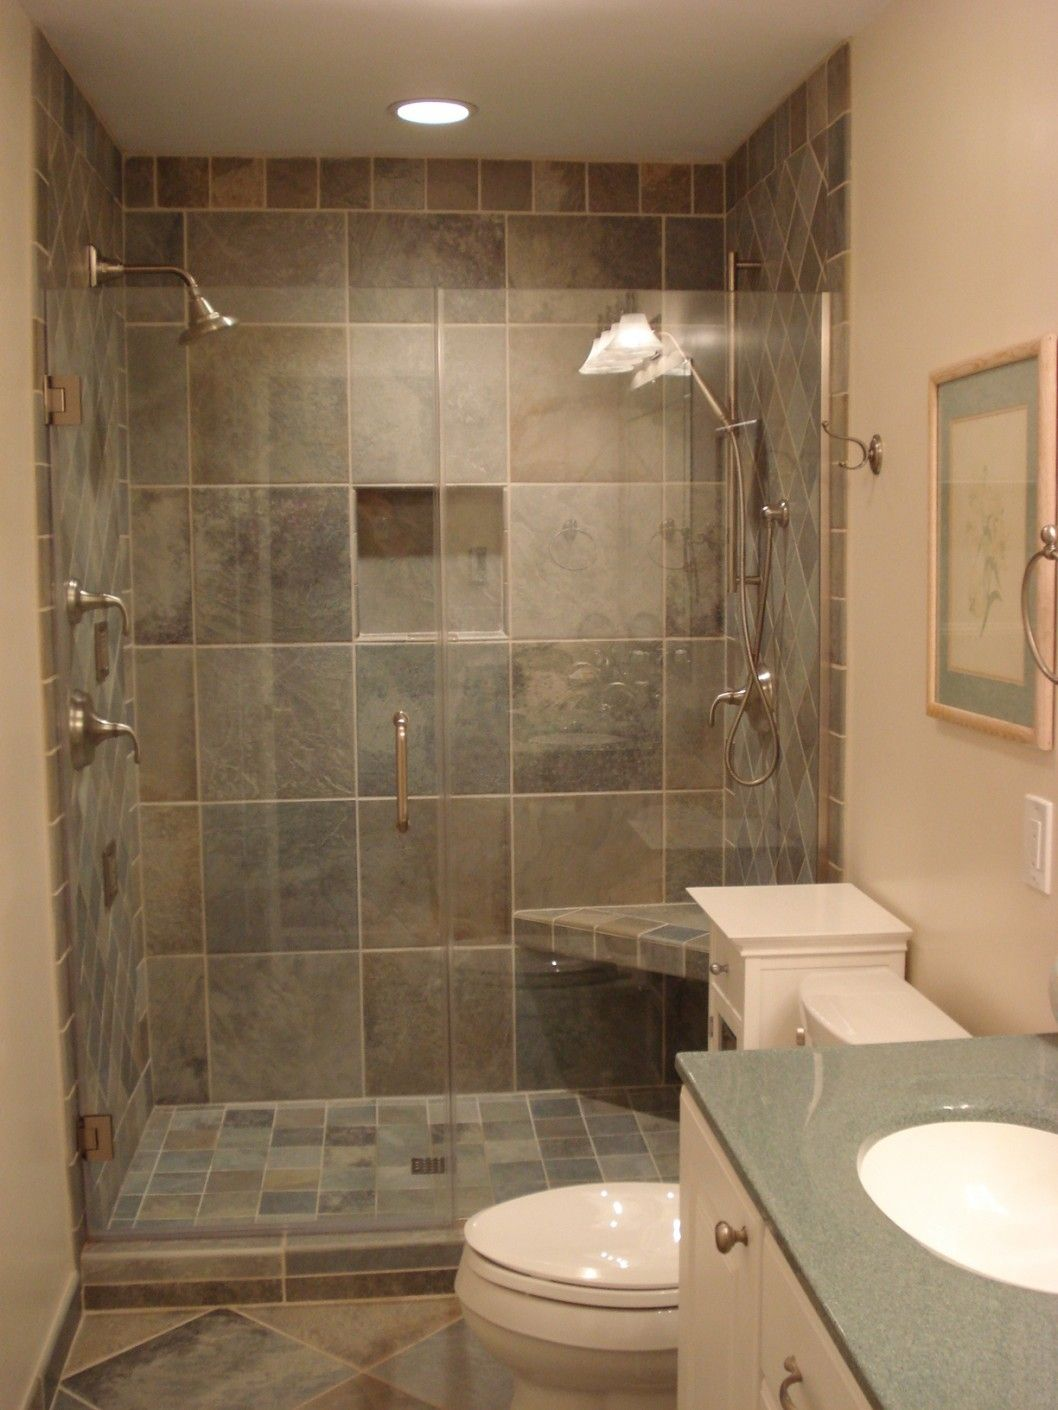 Bathroom Remodel Cost Dallas best of ideas, remodel bathroom tub and how to remodel my bathroom